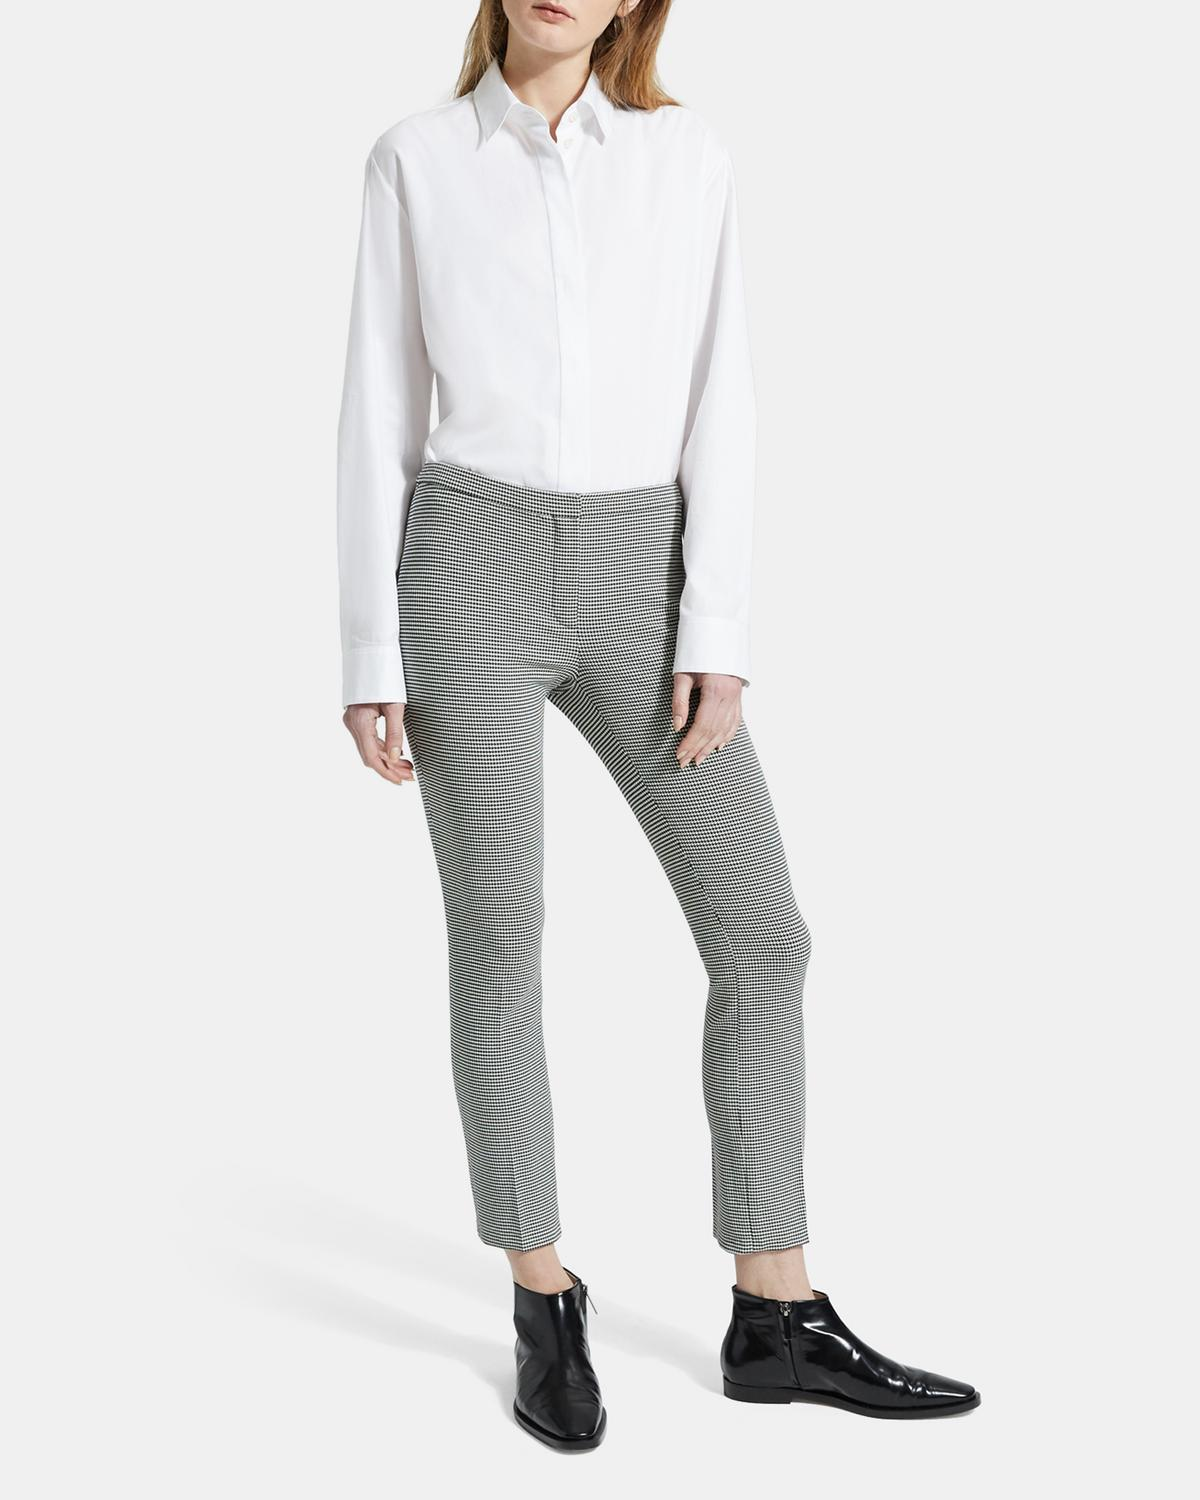 Theory Womens Black-Ivory Houndstooth Classic Fit Skinny Pants 12 BHFO 2508